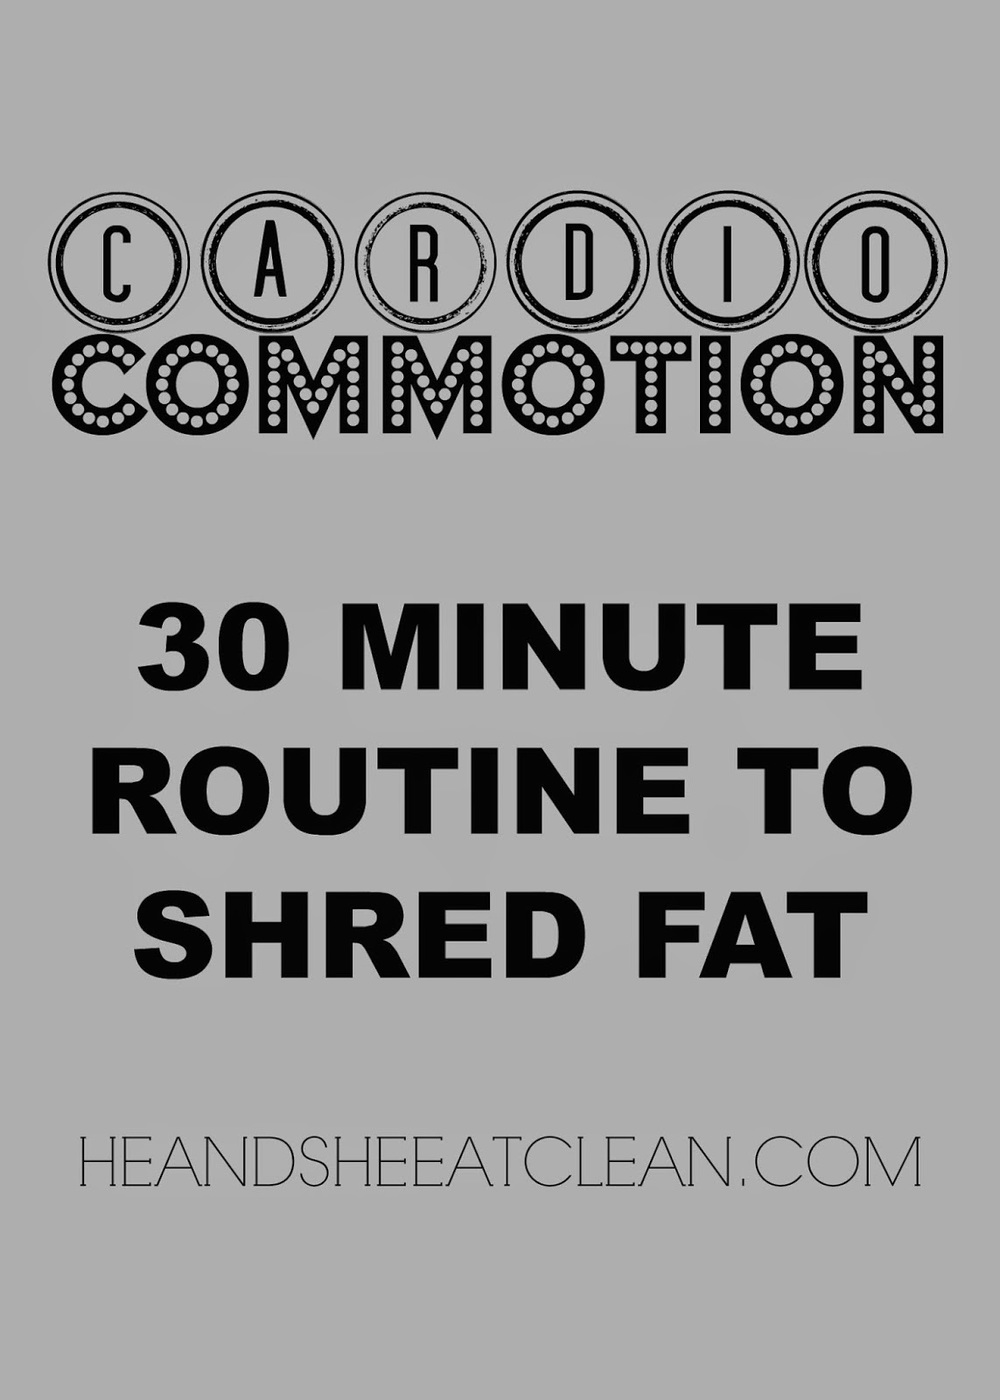 Cardio Commotion - 30 minute Routine to Shred Fat | He and She Eat Clean